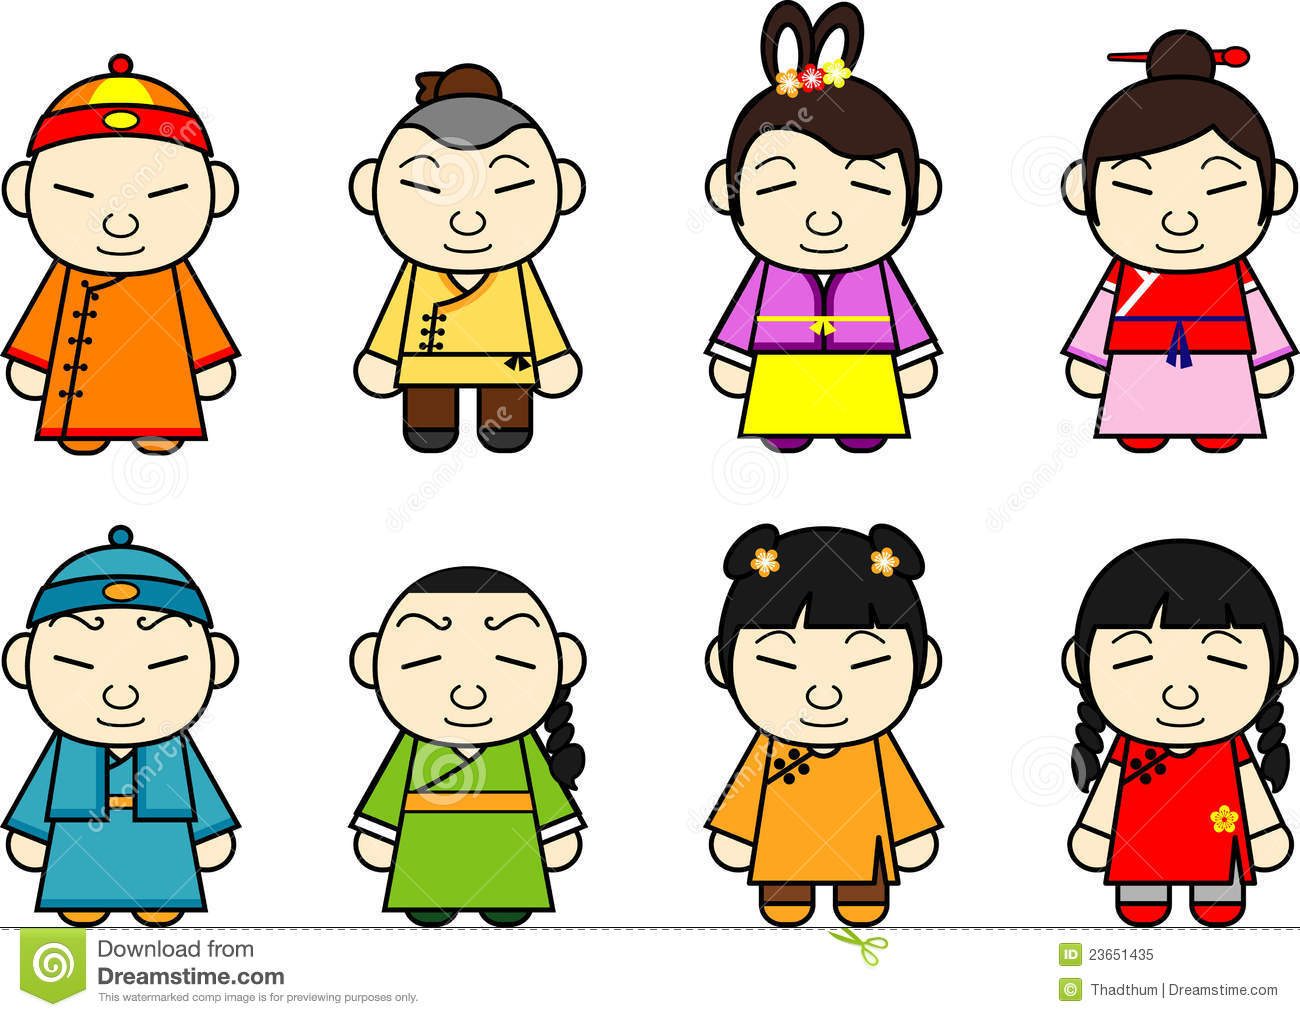 Chinese Cartoon Character Set Royalty Free Stock Photo - Image ...